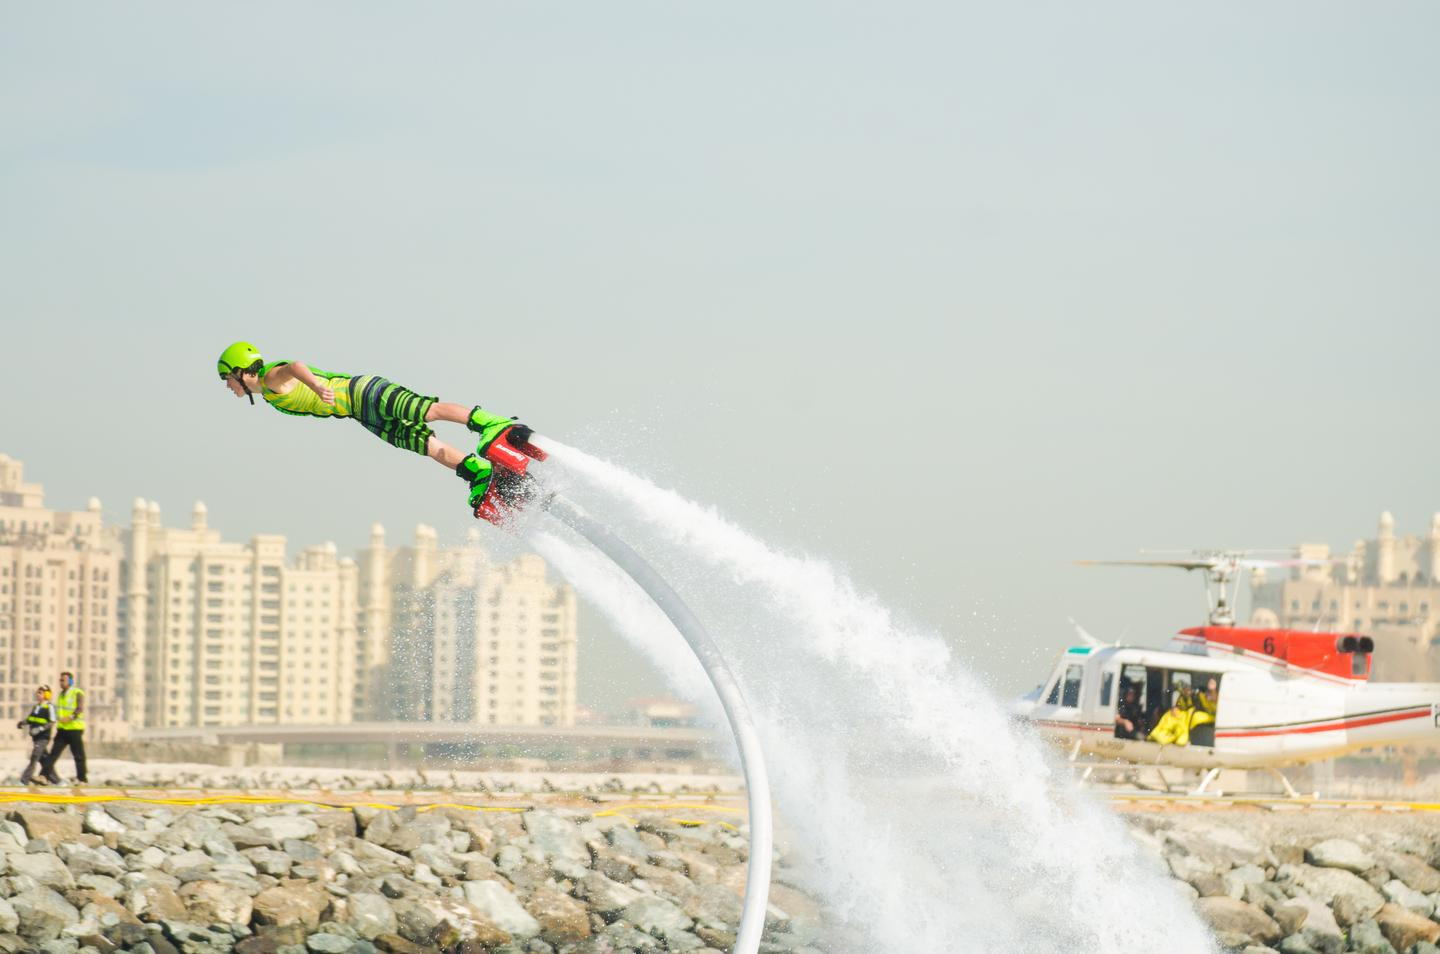 15-year-old Pro Category contender Hunter Verlander at the Flyboard World Cup 2014 held in Dubai, December, 2014 (Photo: Liam McKenna)